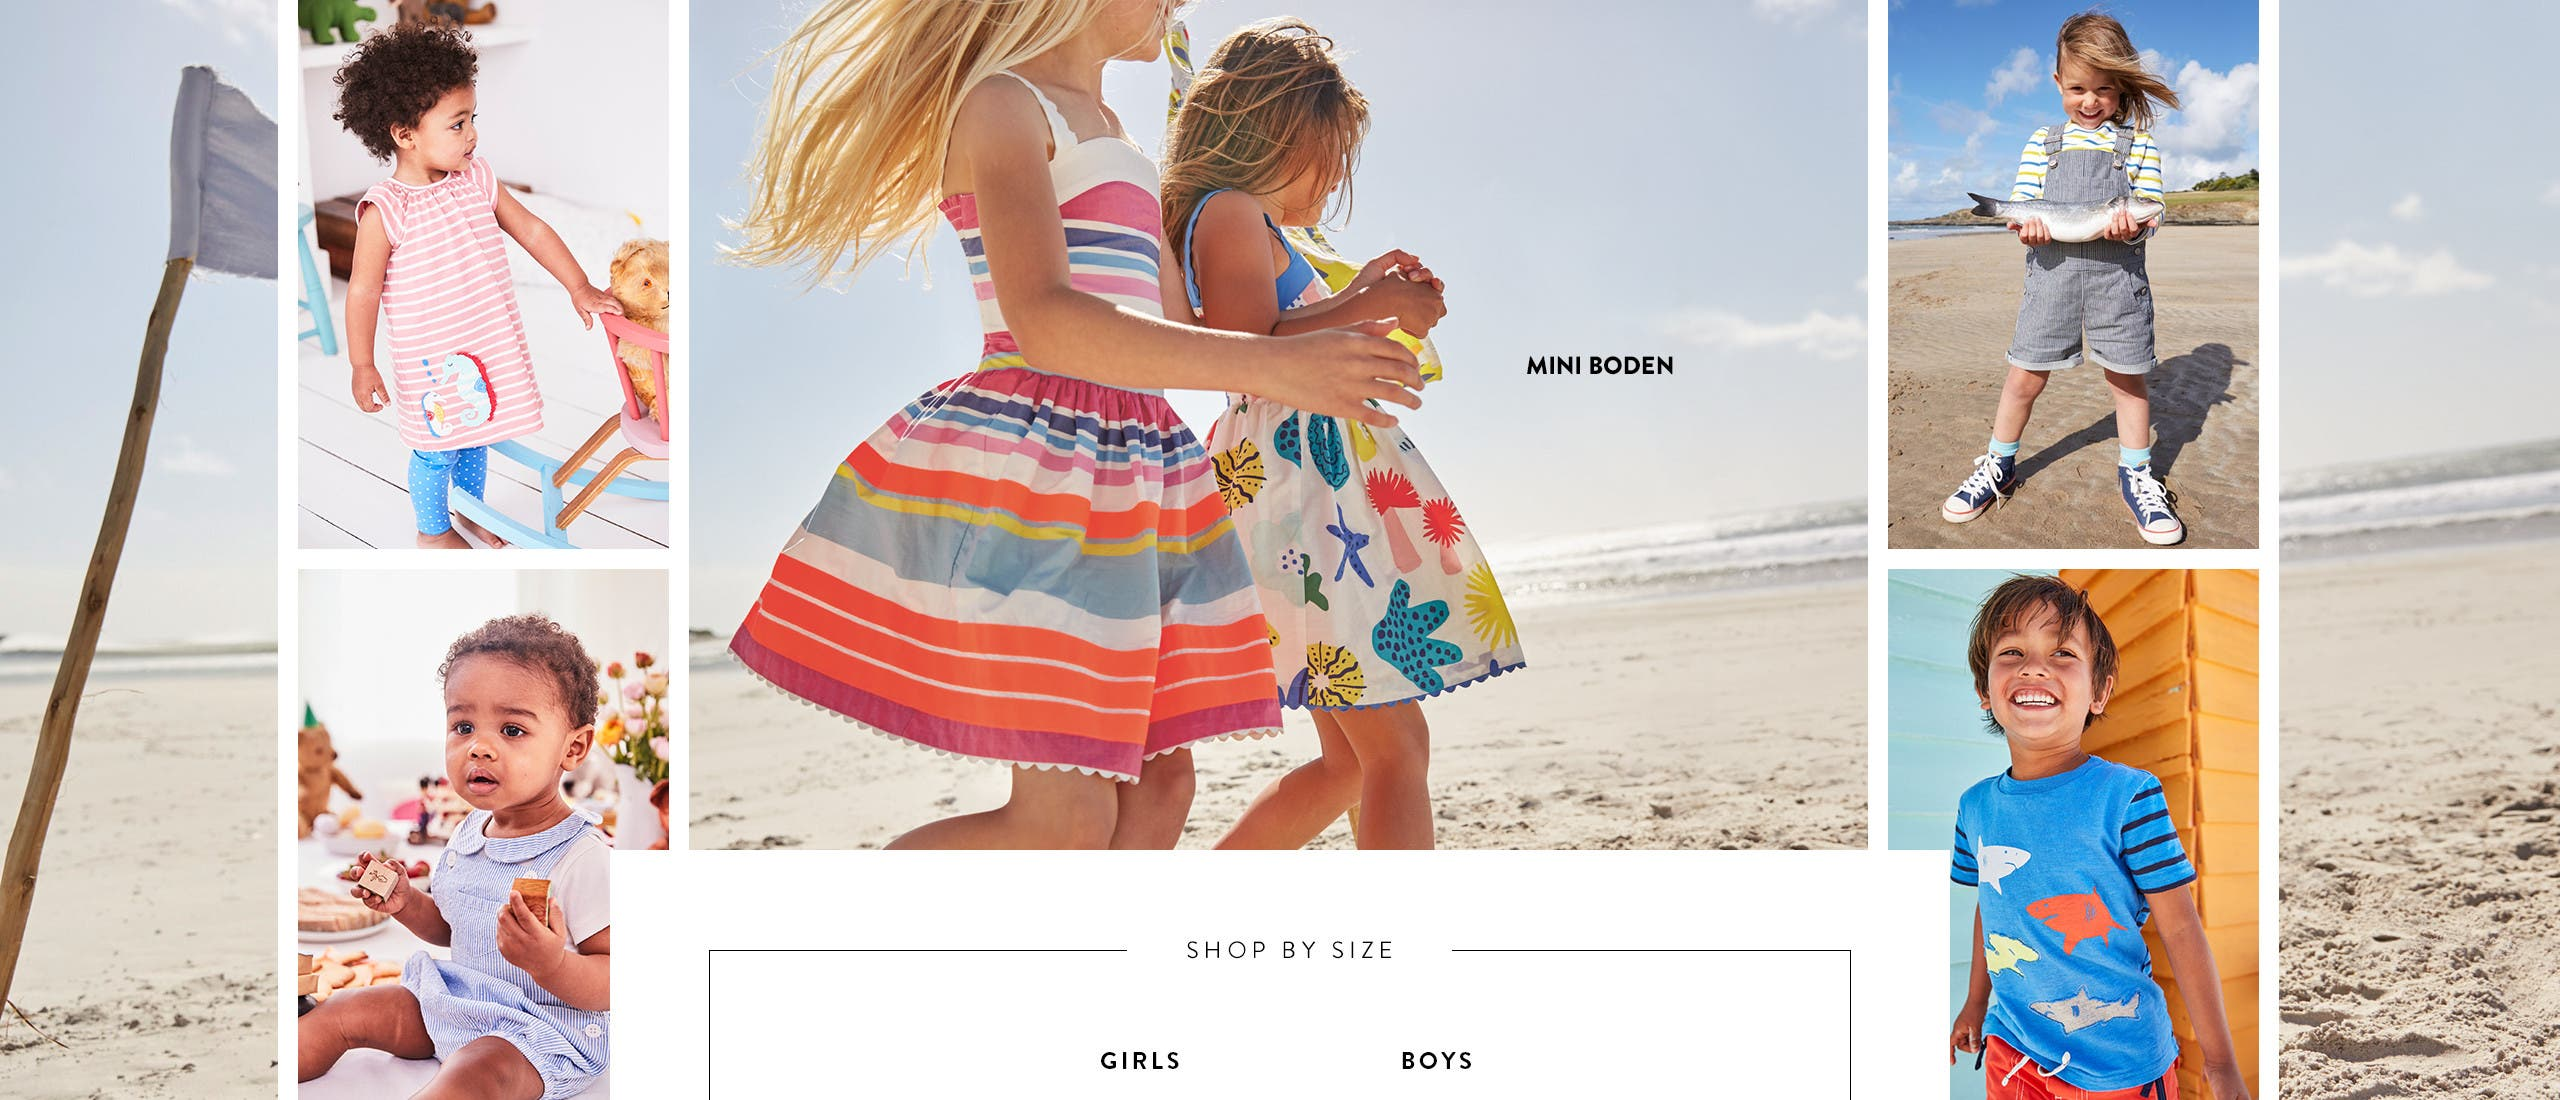 Mini Boden clothing and shoes for kids and babies.